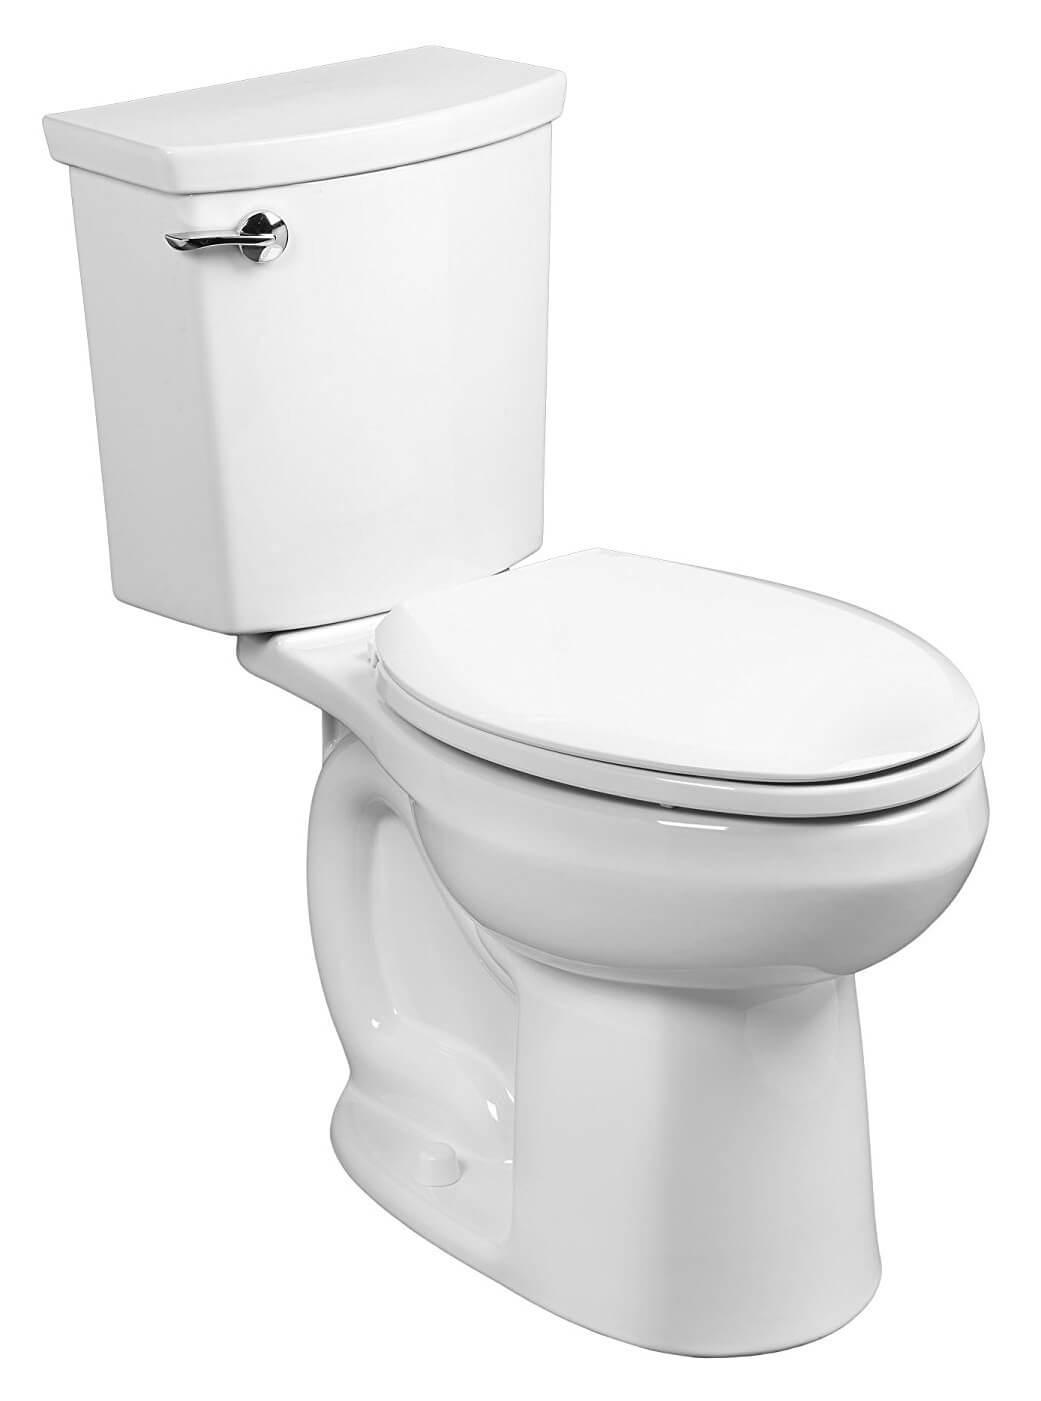 Best toilet on the market reviews - American Standard 288ca114 020 H2optimum Siphonic Normal Height Elongated Toilet